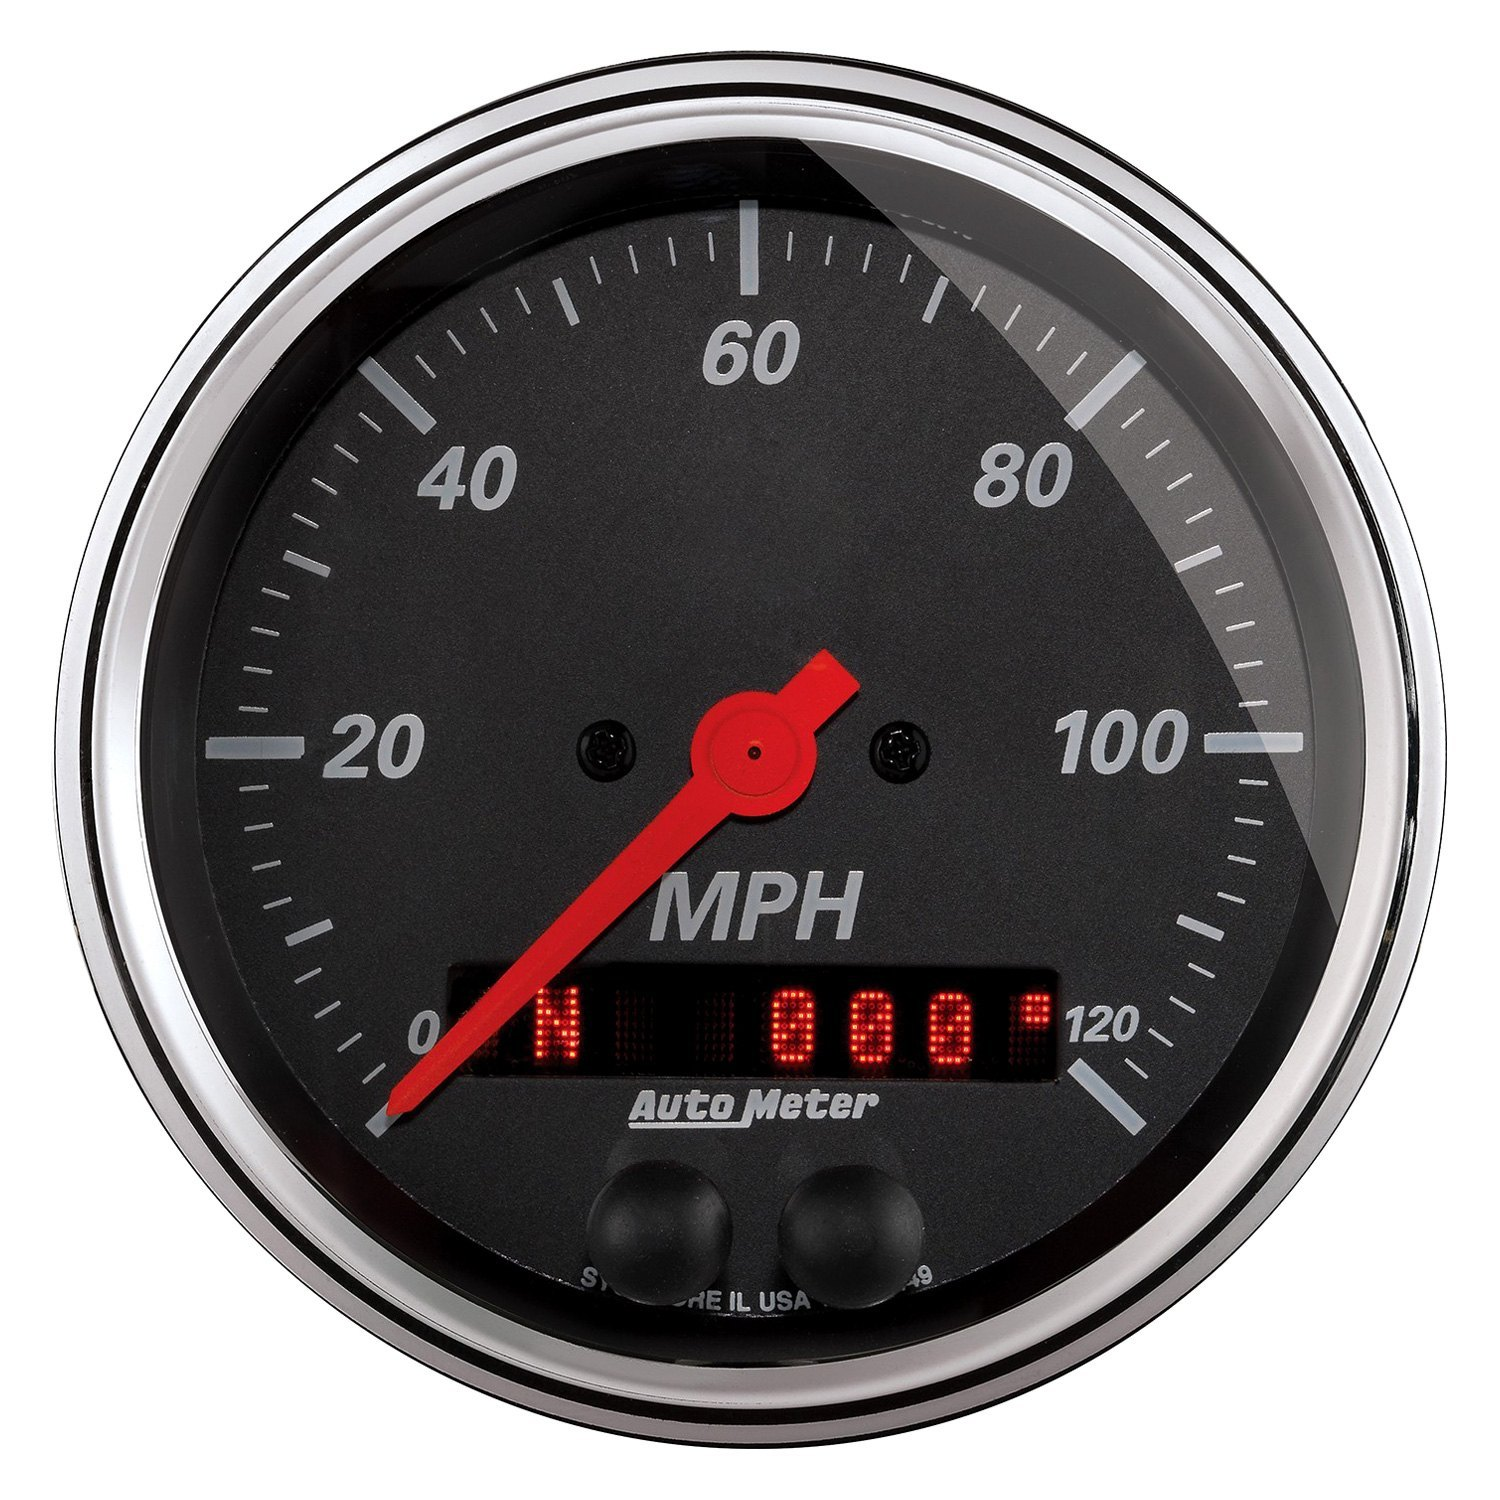 Auto Meter Electronic Speedometers : Auto meter designer black™ speedometer in dash gauge